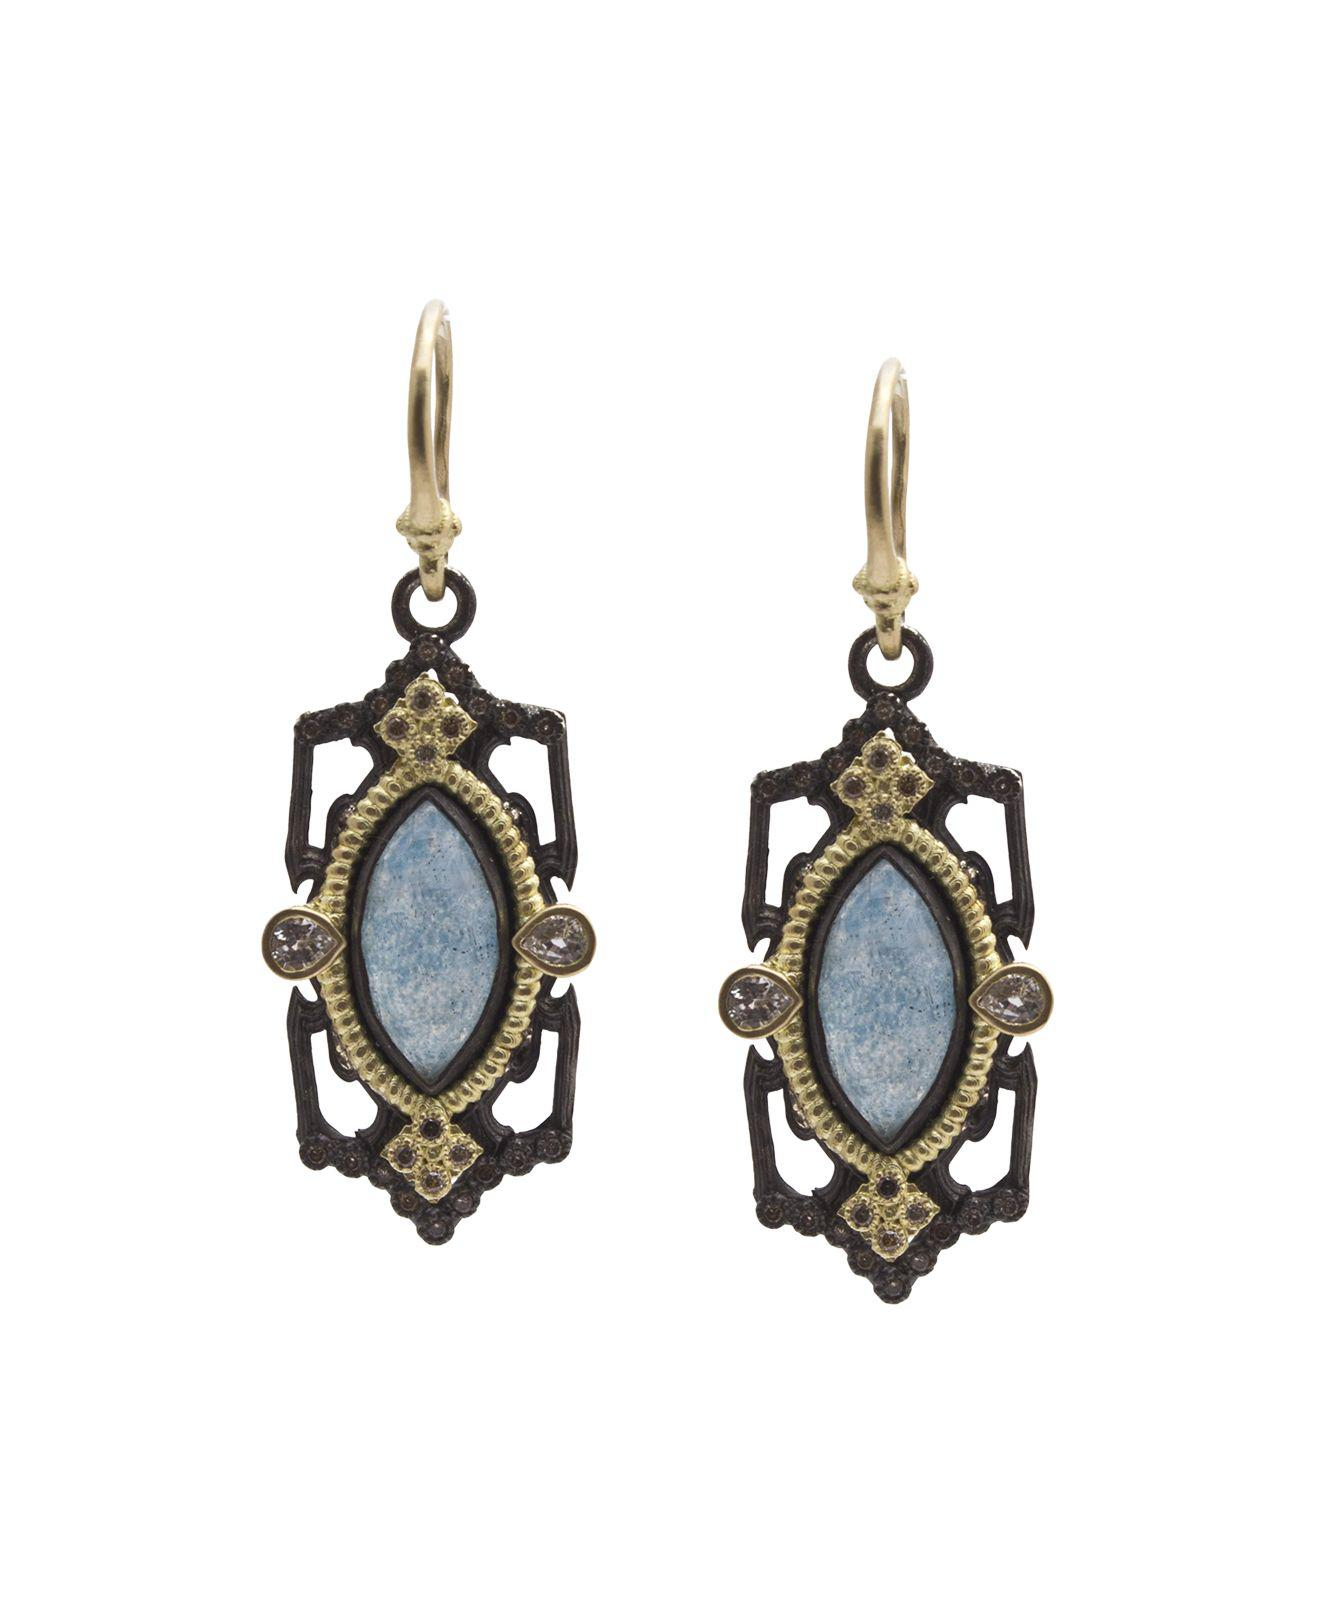 Armenta Old World Octagonal Earrings with Diamonds & White Sapphires e3L6kb